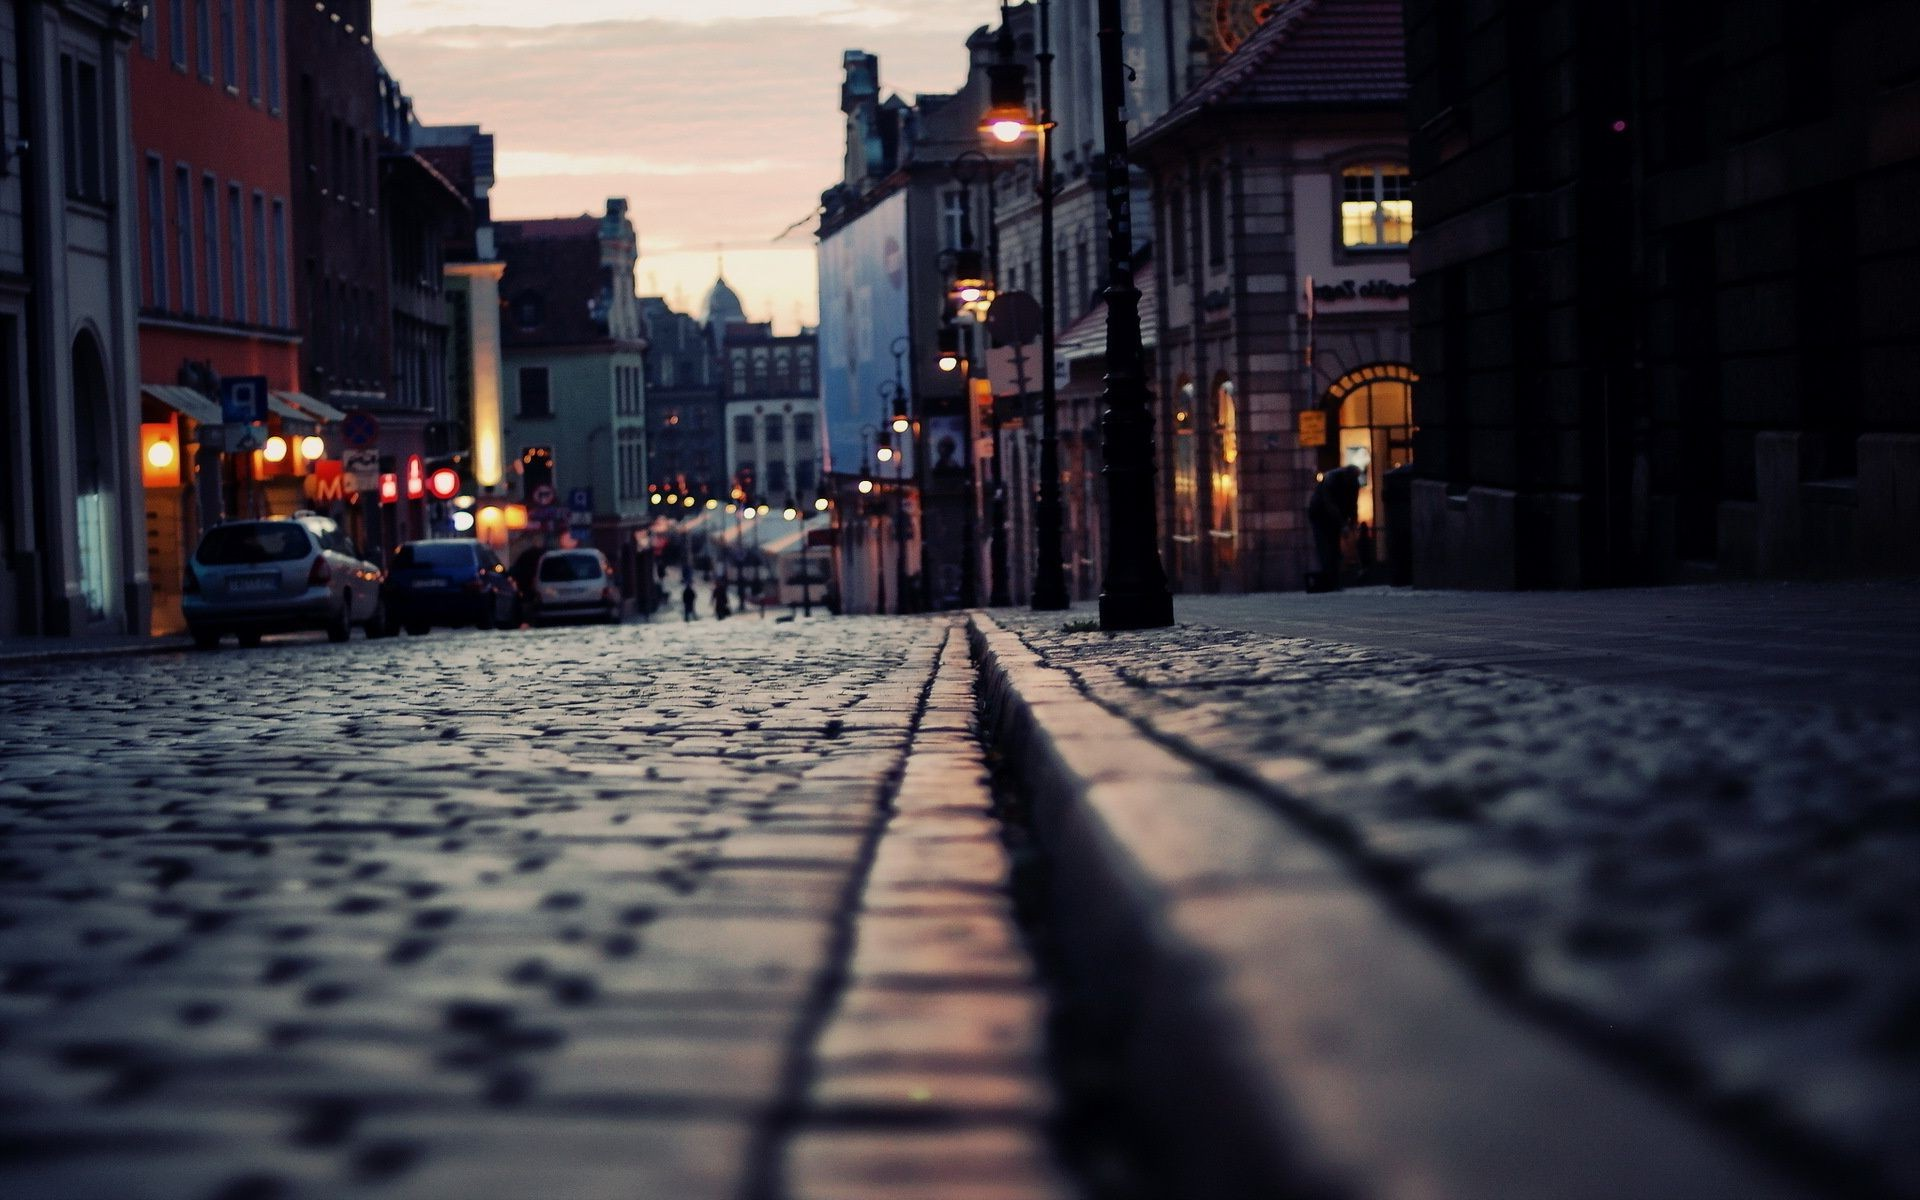 Street City Night Android Wallpapers For Free